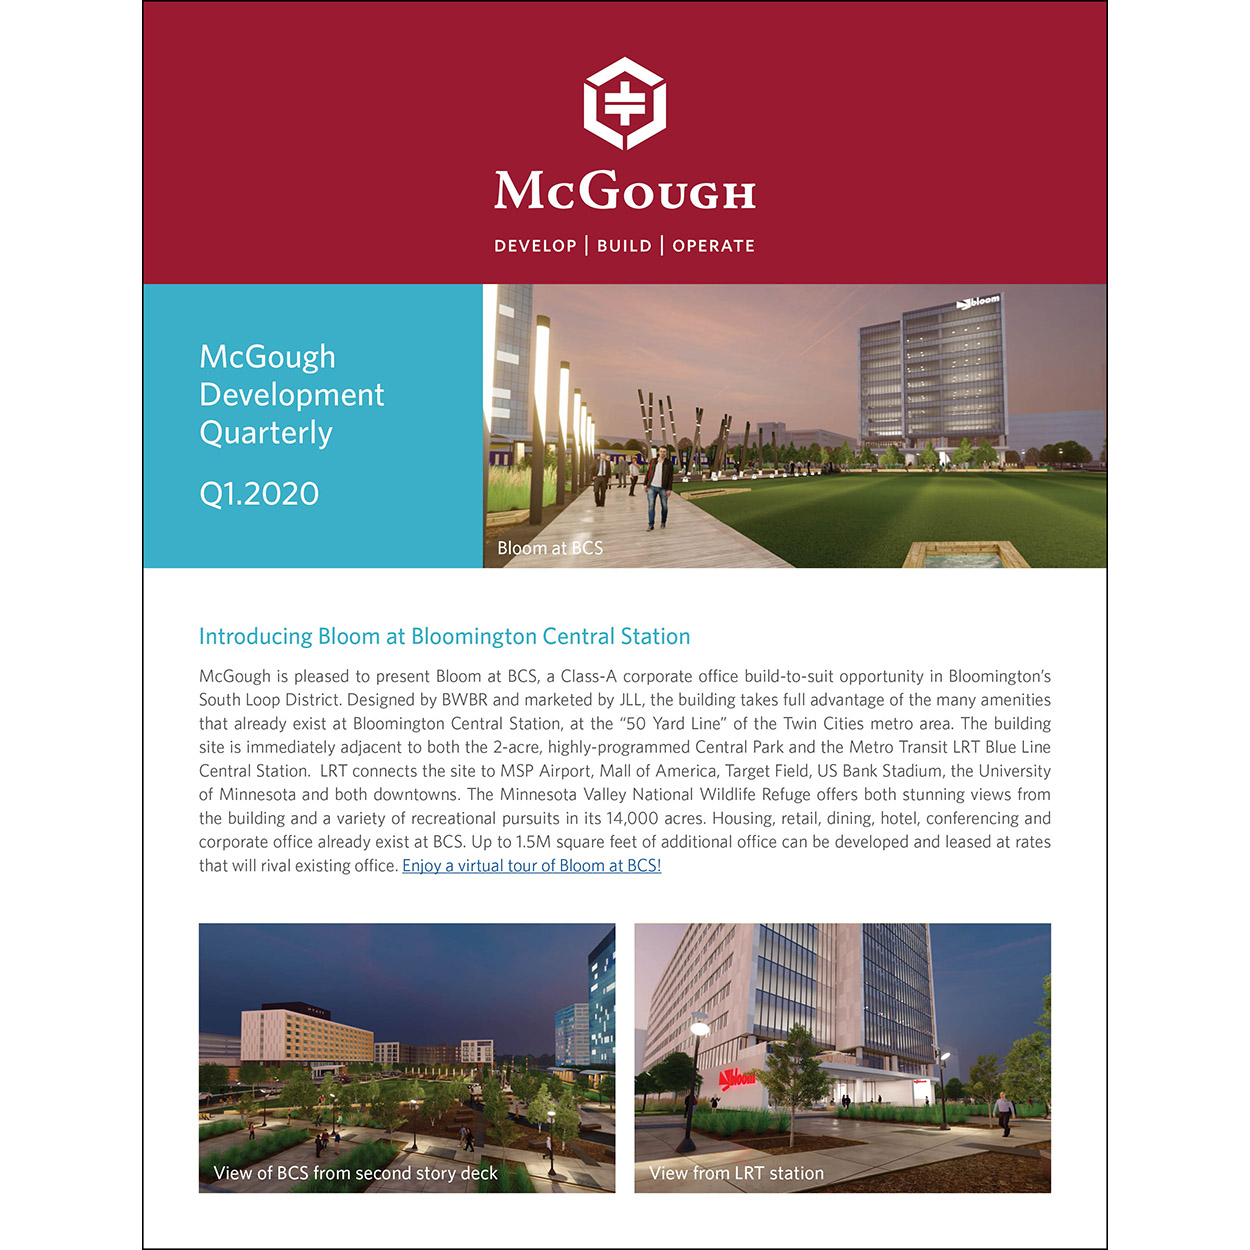 McGough Development Quarterly Newsletter Q1 2020